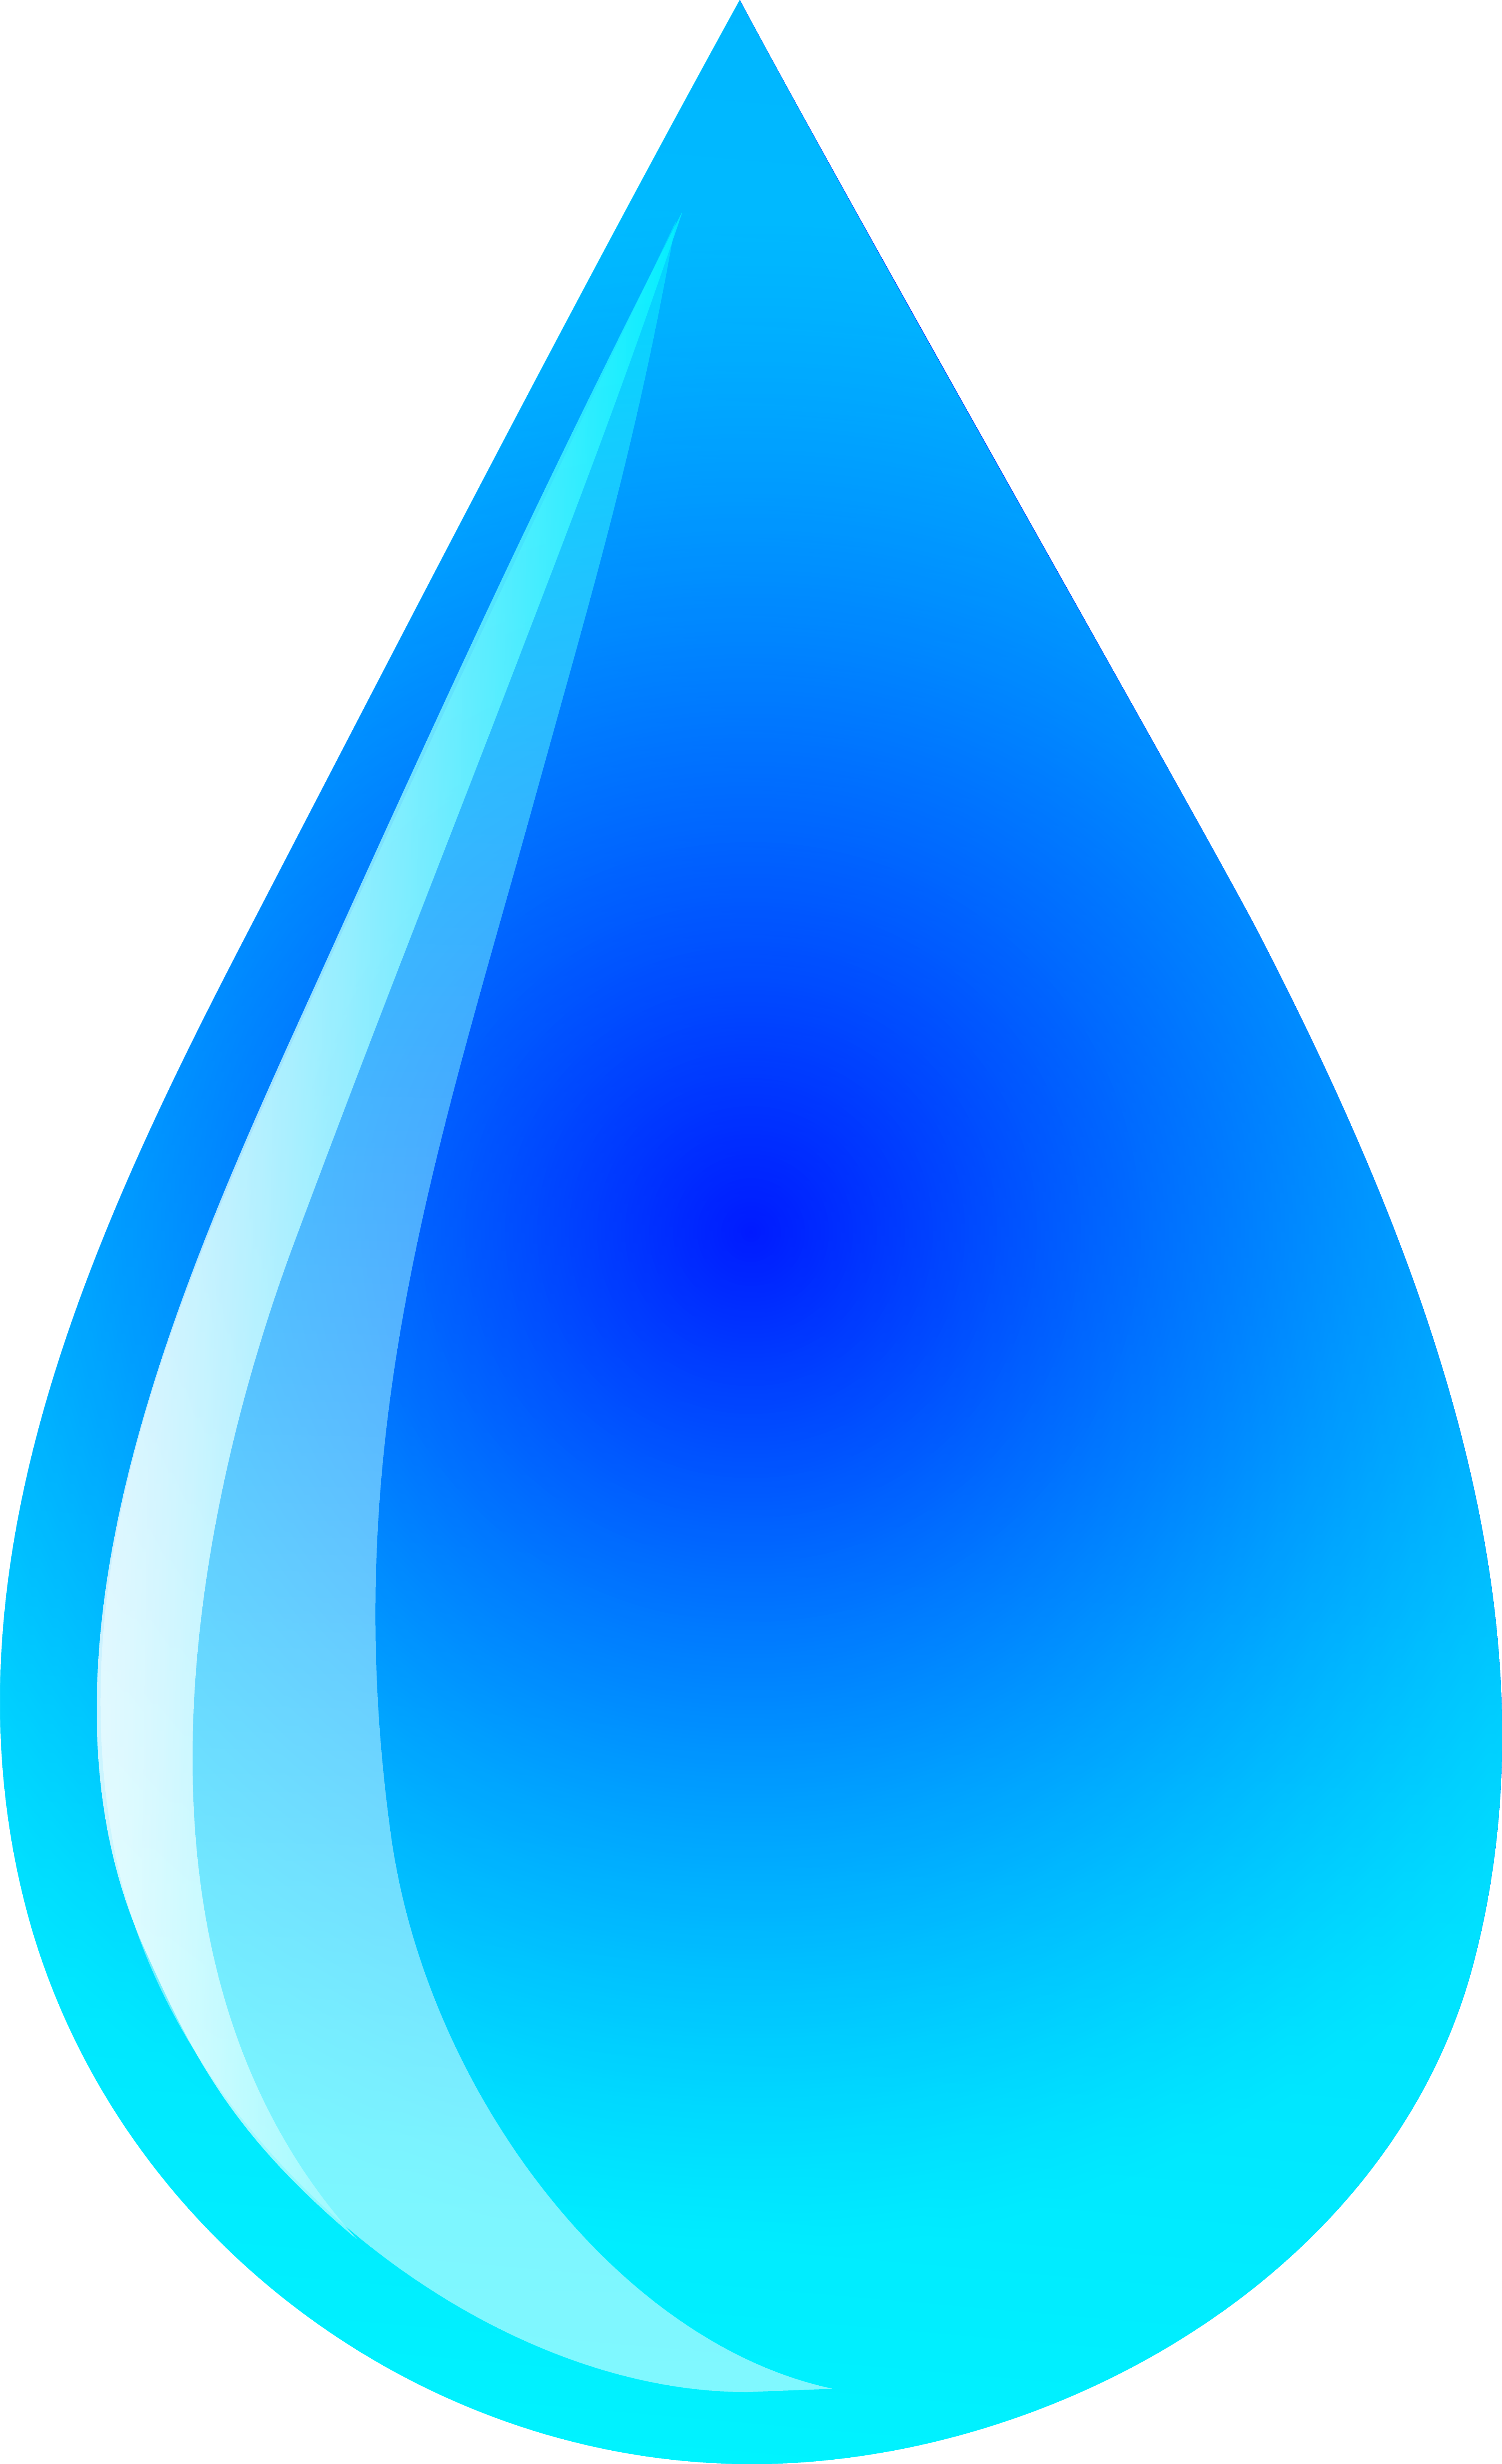 Water Icon Png - ClipArt Best